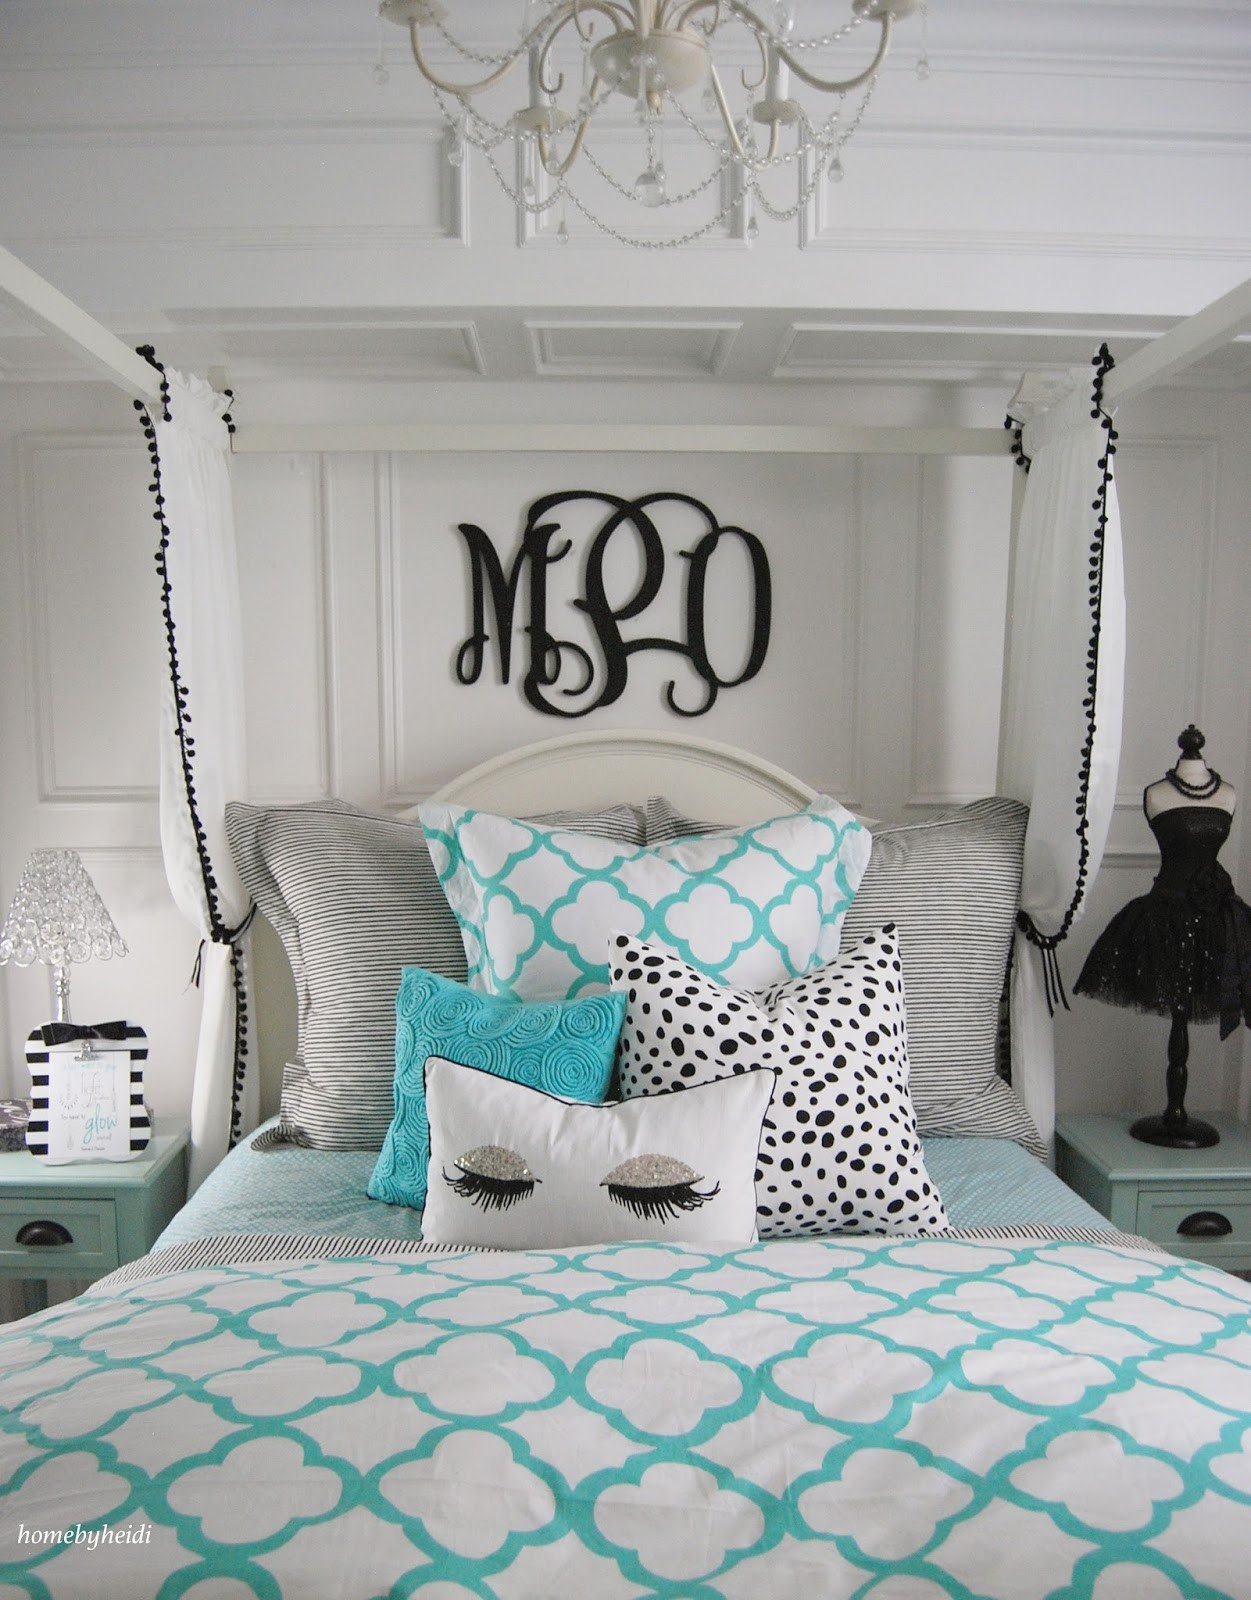 Room Decor for Teenage Girls Best Of Home by Heidi Tiffany Inspired Bedroom